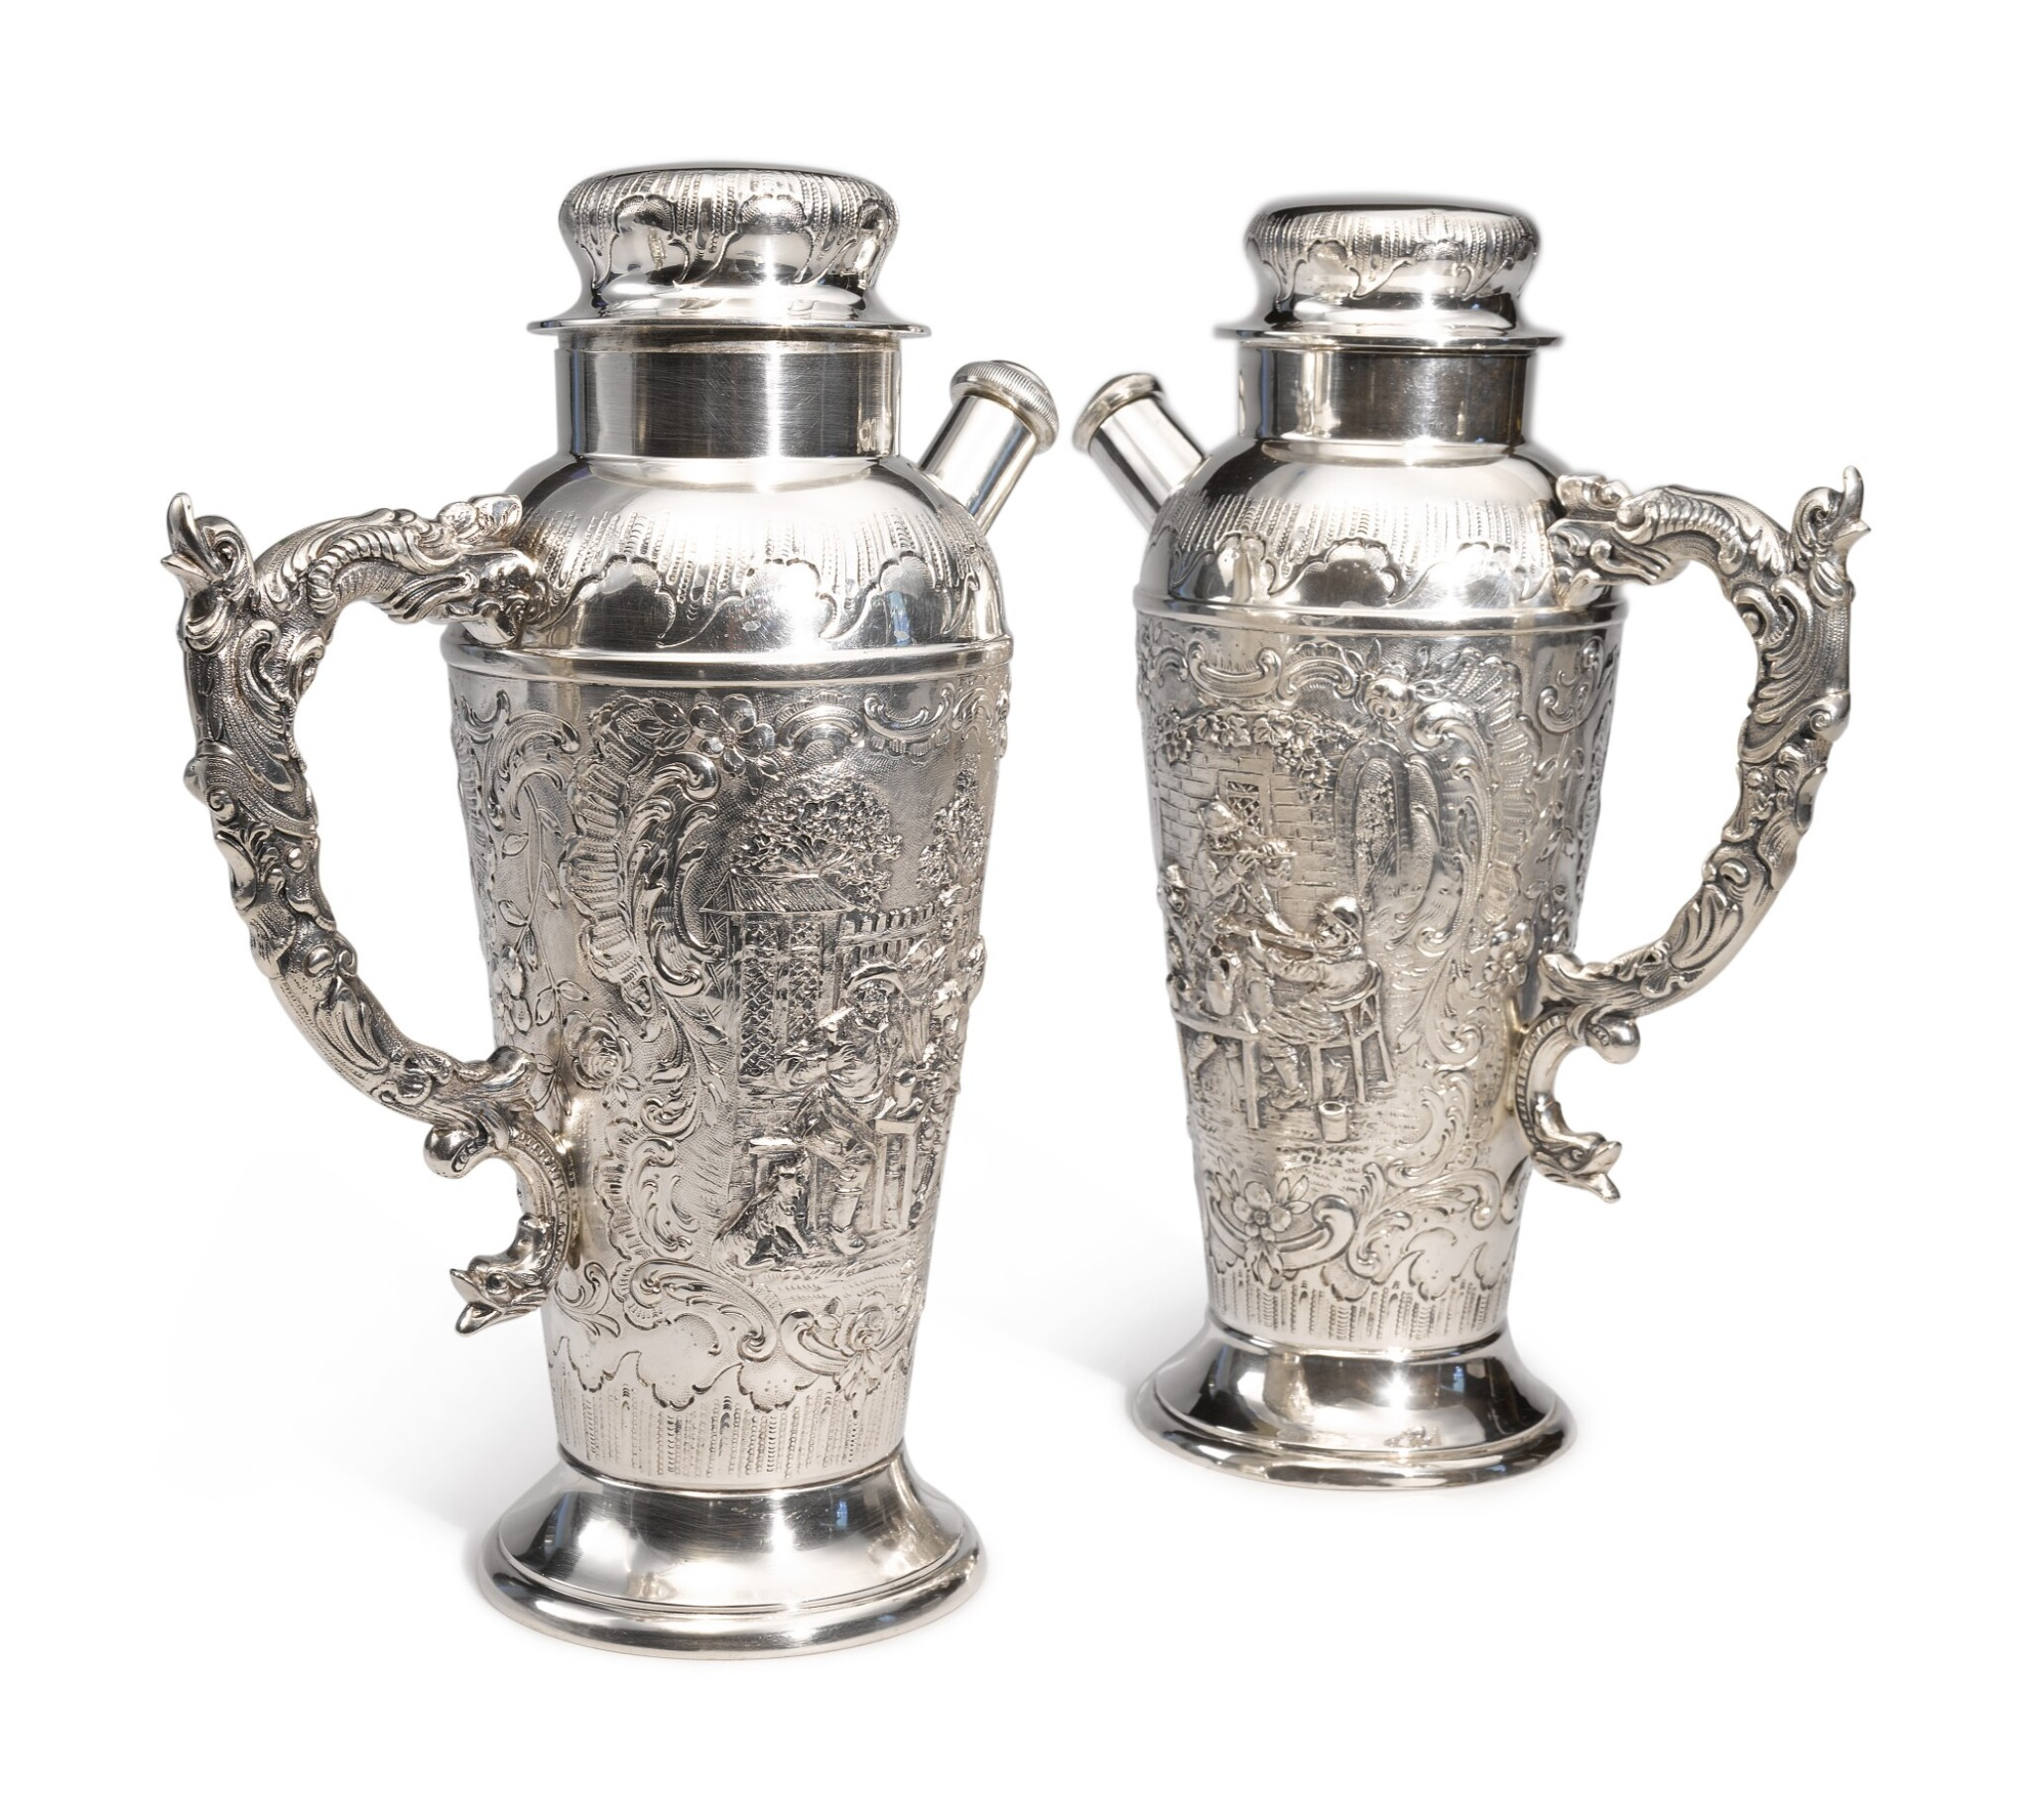 View full screen - View 1 of Lot 322. A PAIR OF GERMAN SILVER COCKTAIL SHAKERS, MAKER'S MARK WH/H IN CIRCLE, CIRCA 1900.